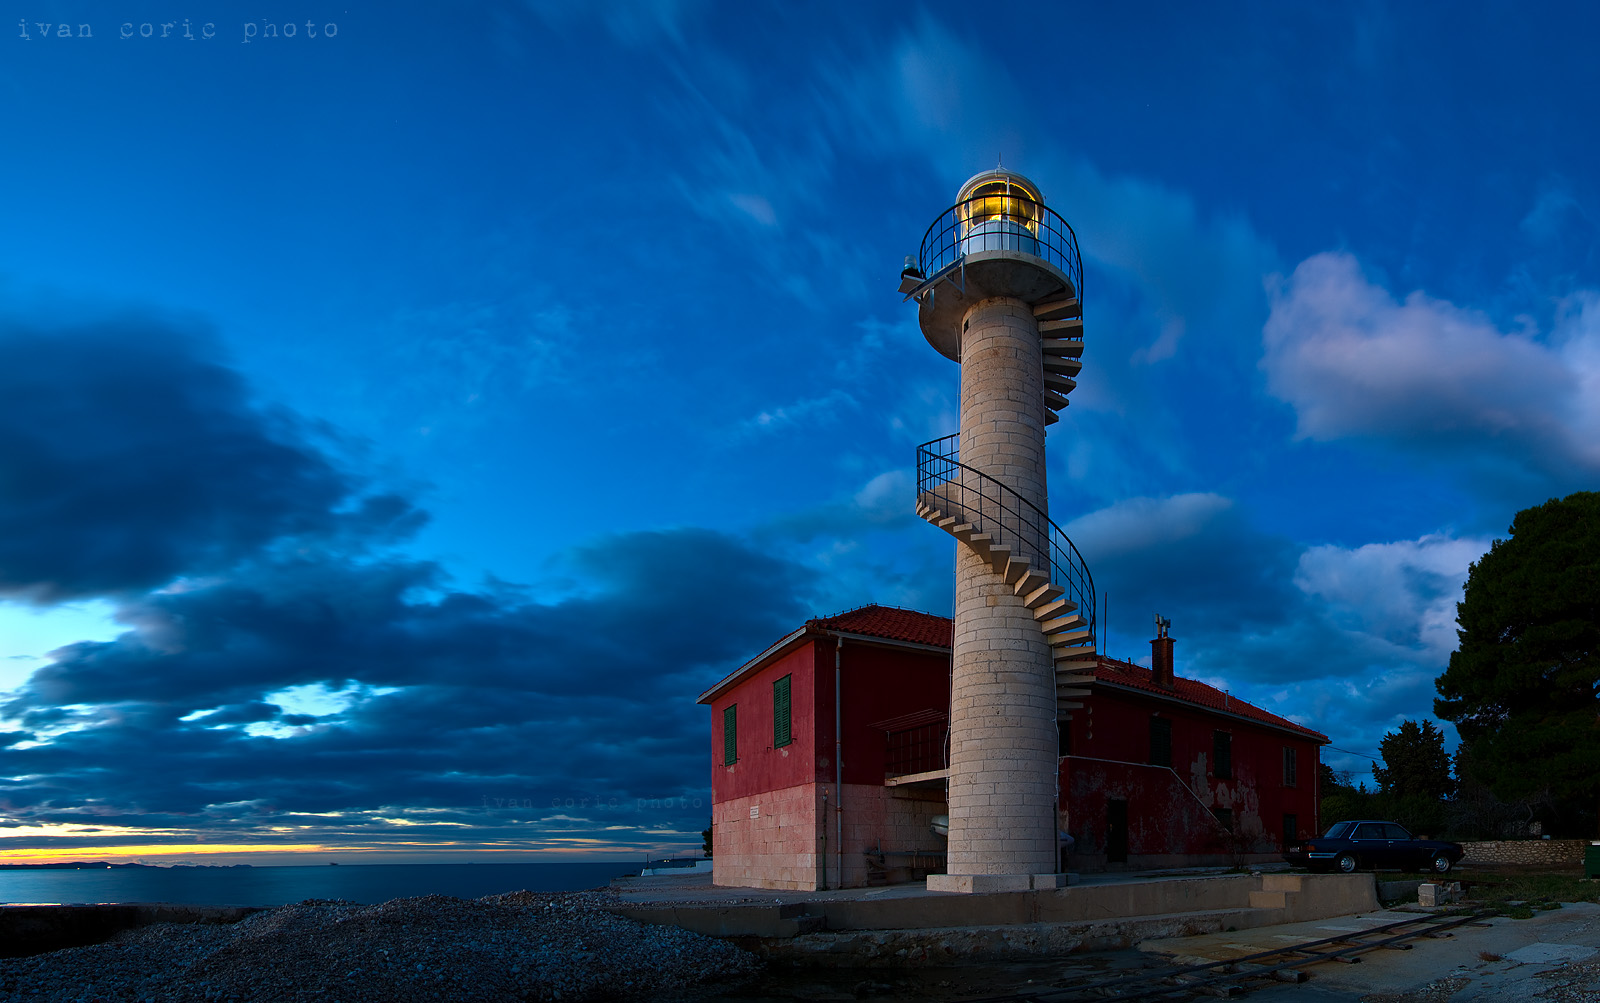 Lighthouse at Puntamika by ivancoric on DeviantArt